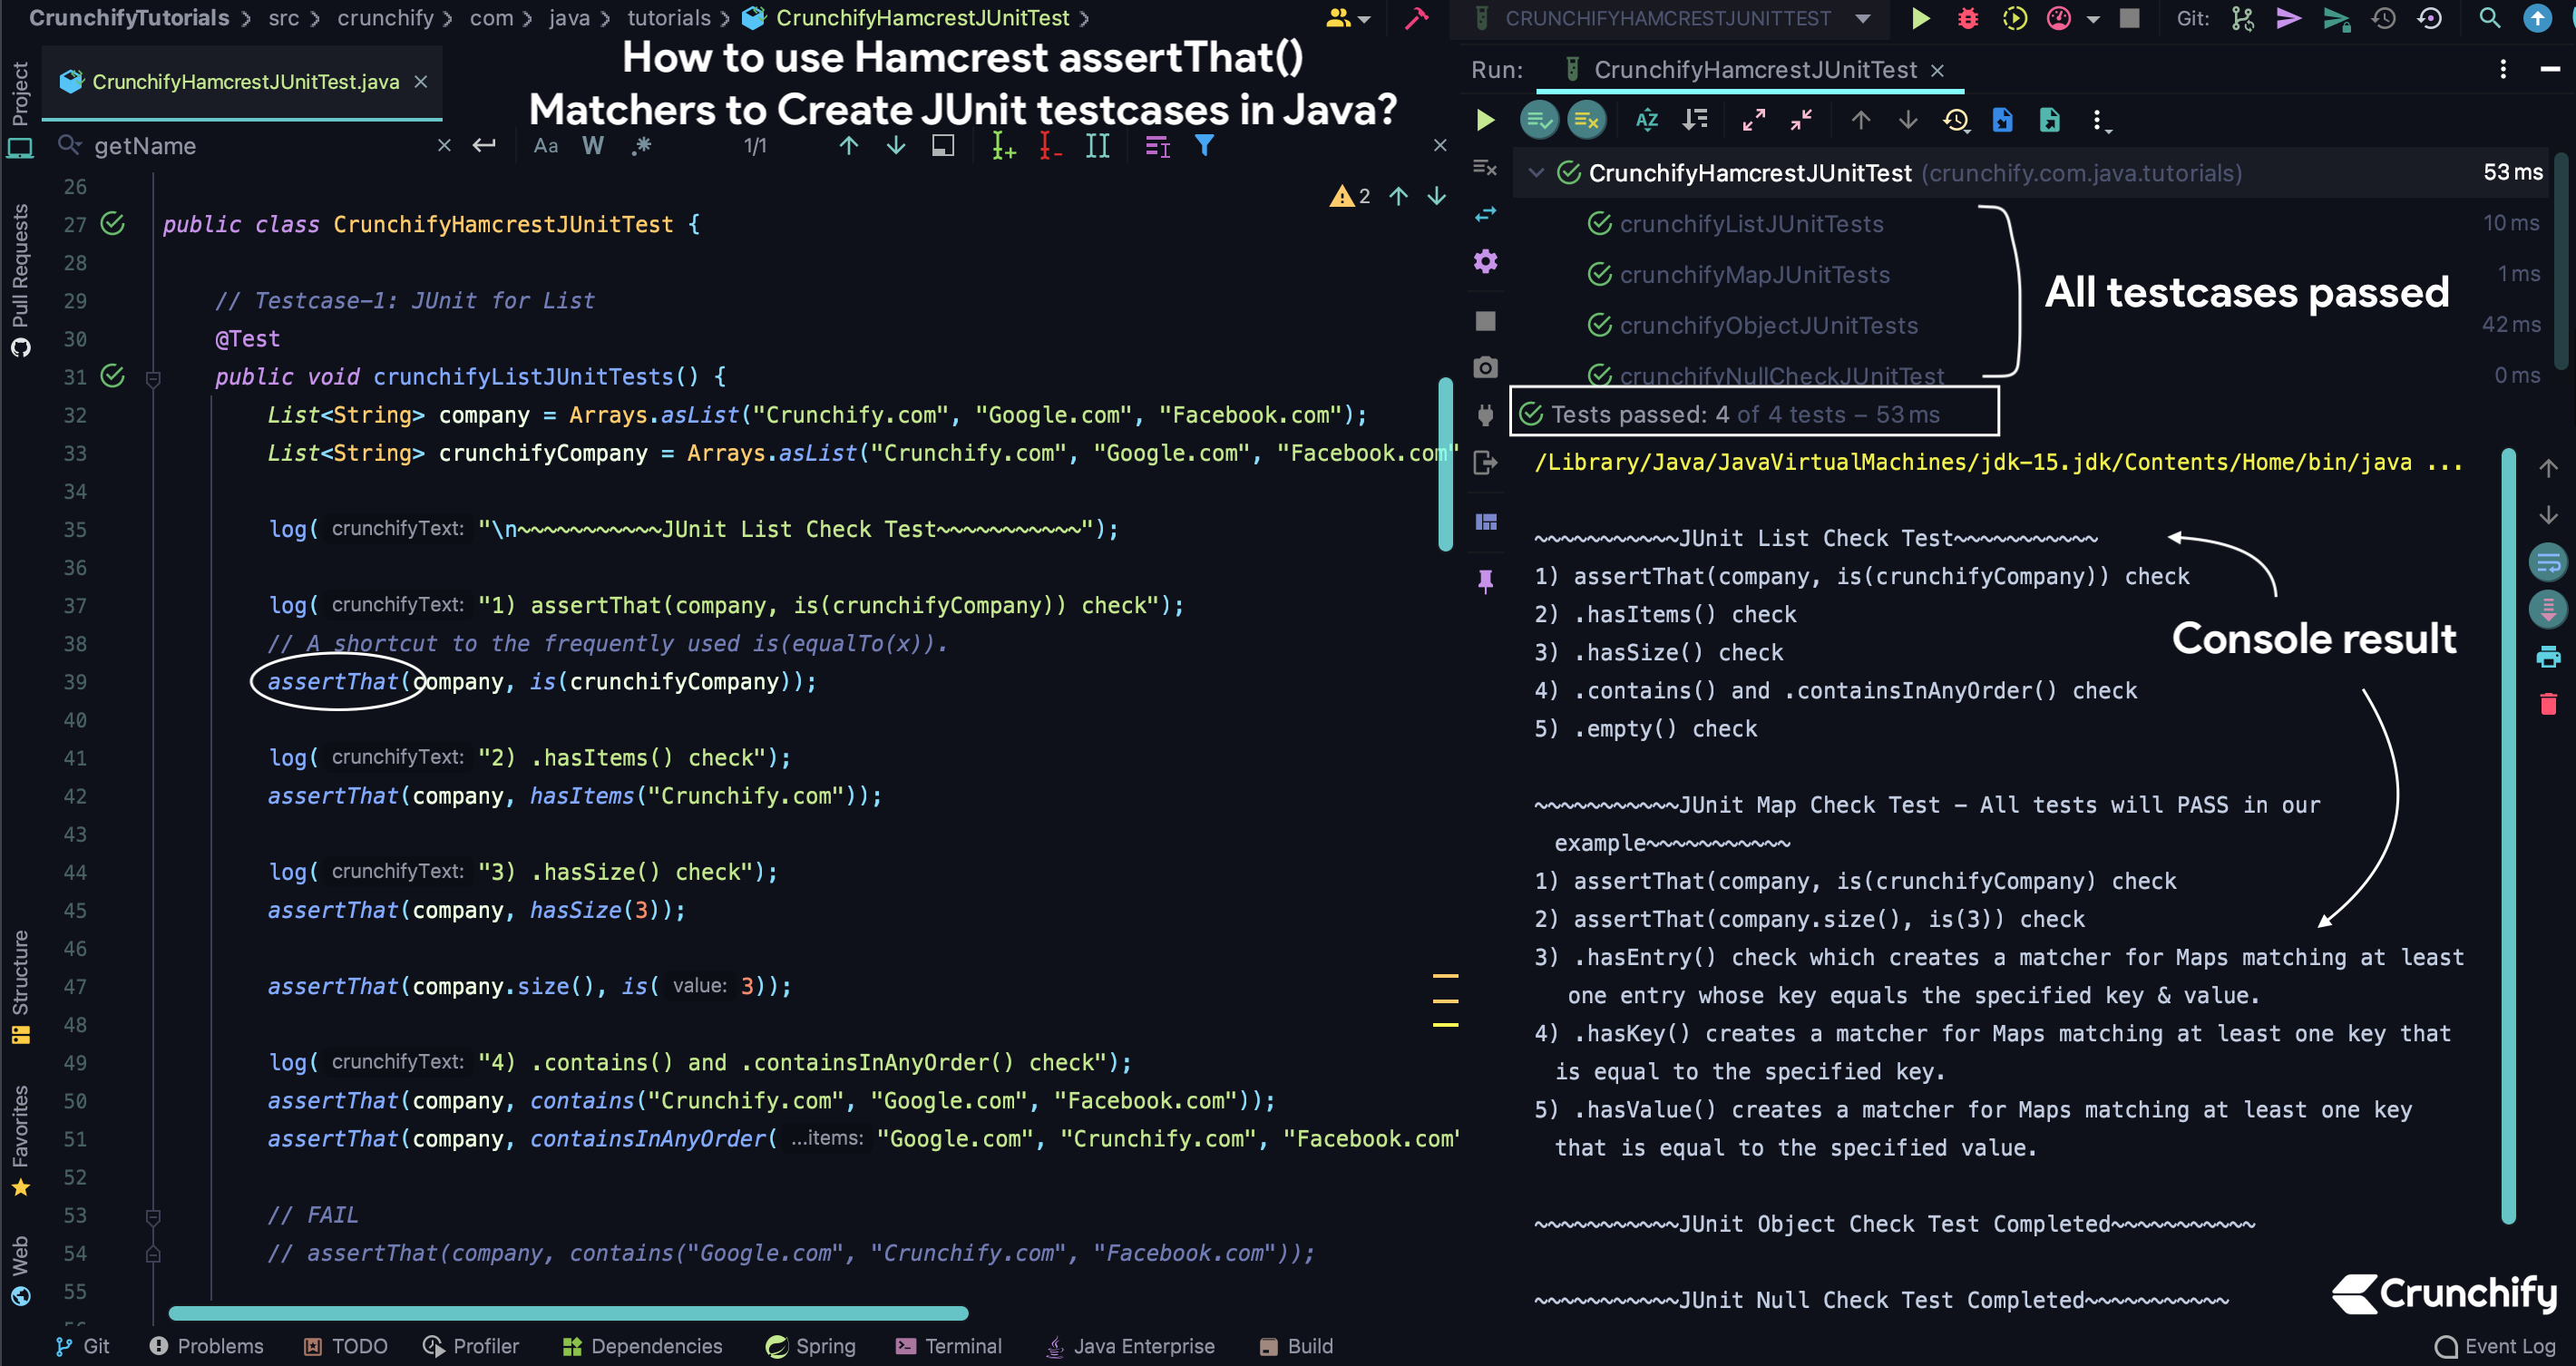 How to use Hamcrest assertThat() Matchers to Create JUnit testcases in Java